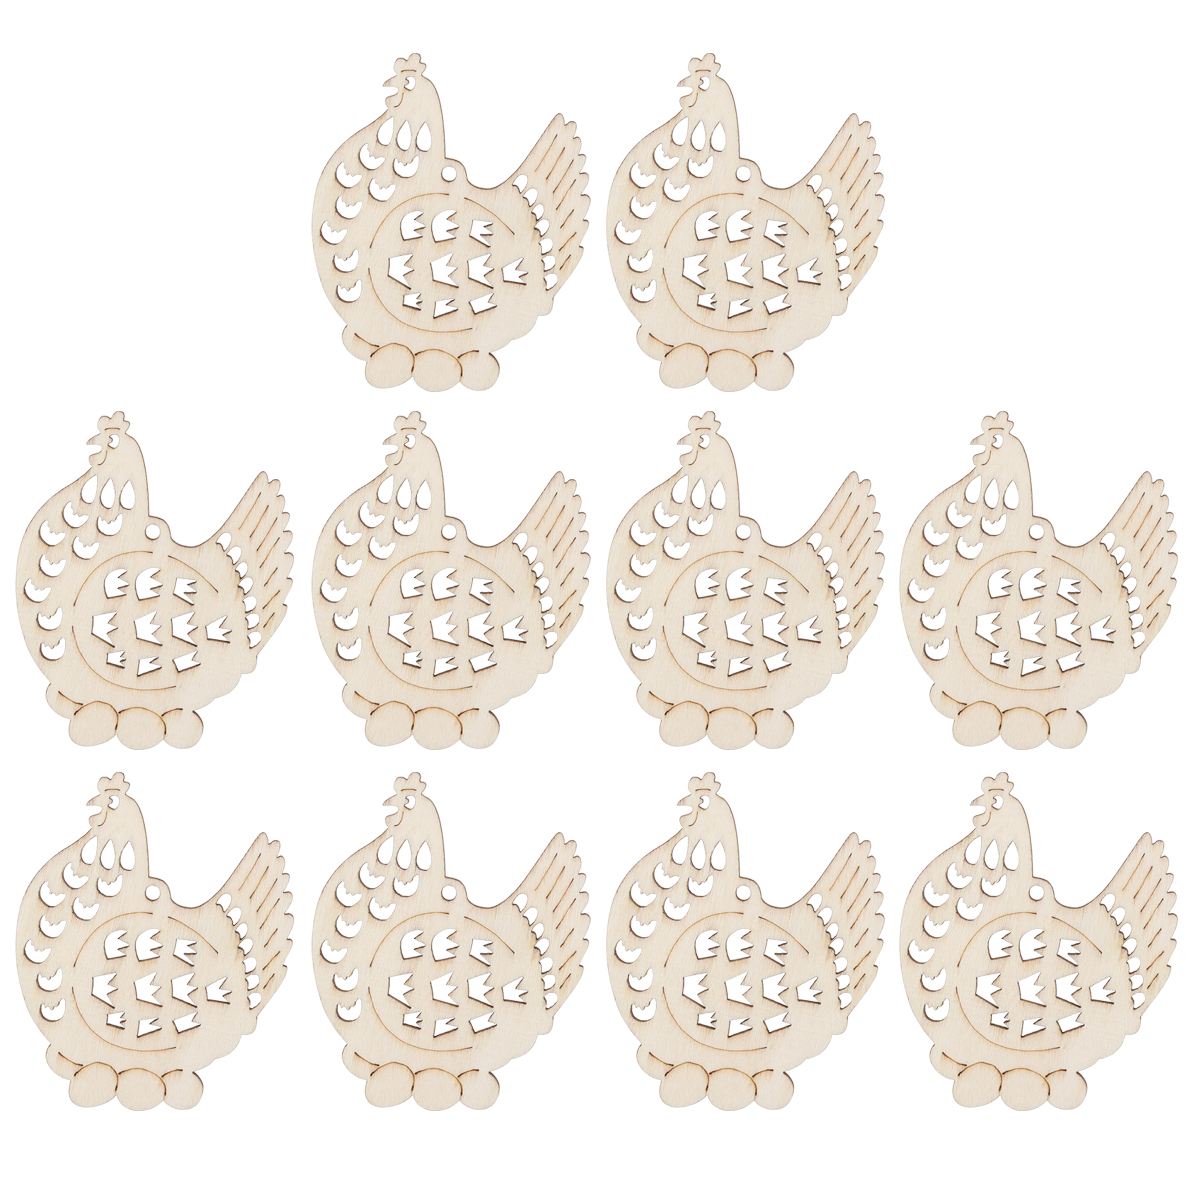 Us 1 68 38 Off 10pcs Hollow Hens Ornaments Wooden Hanging Easter Decorations With Hemp Ropes For Christmas Tree Home Party Decorative Crafts In Wood